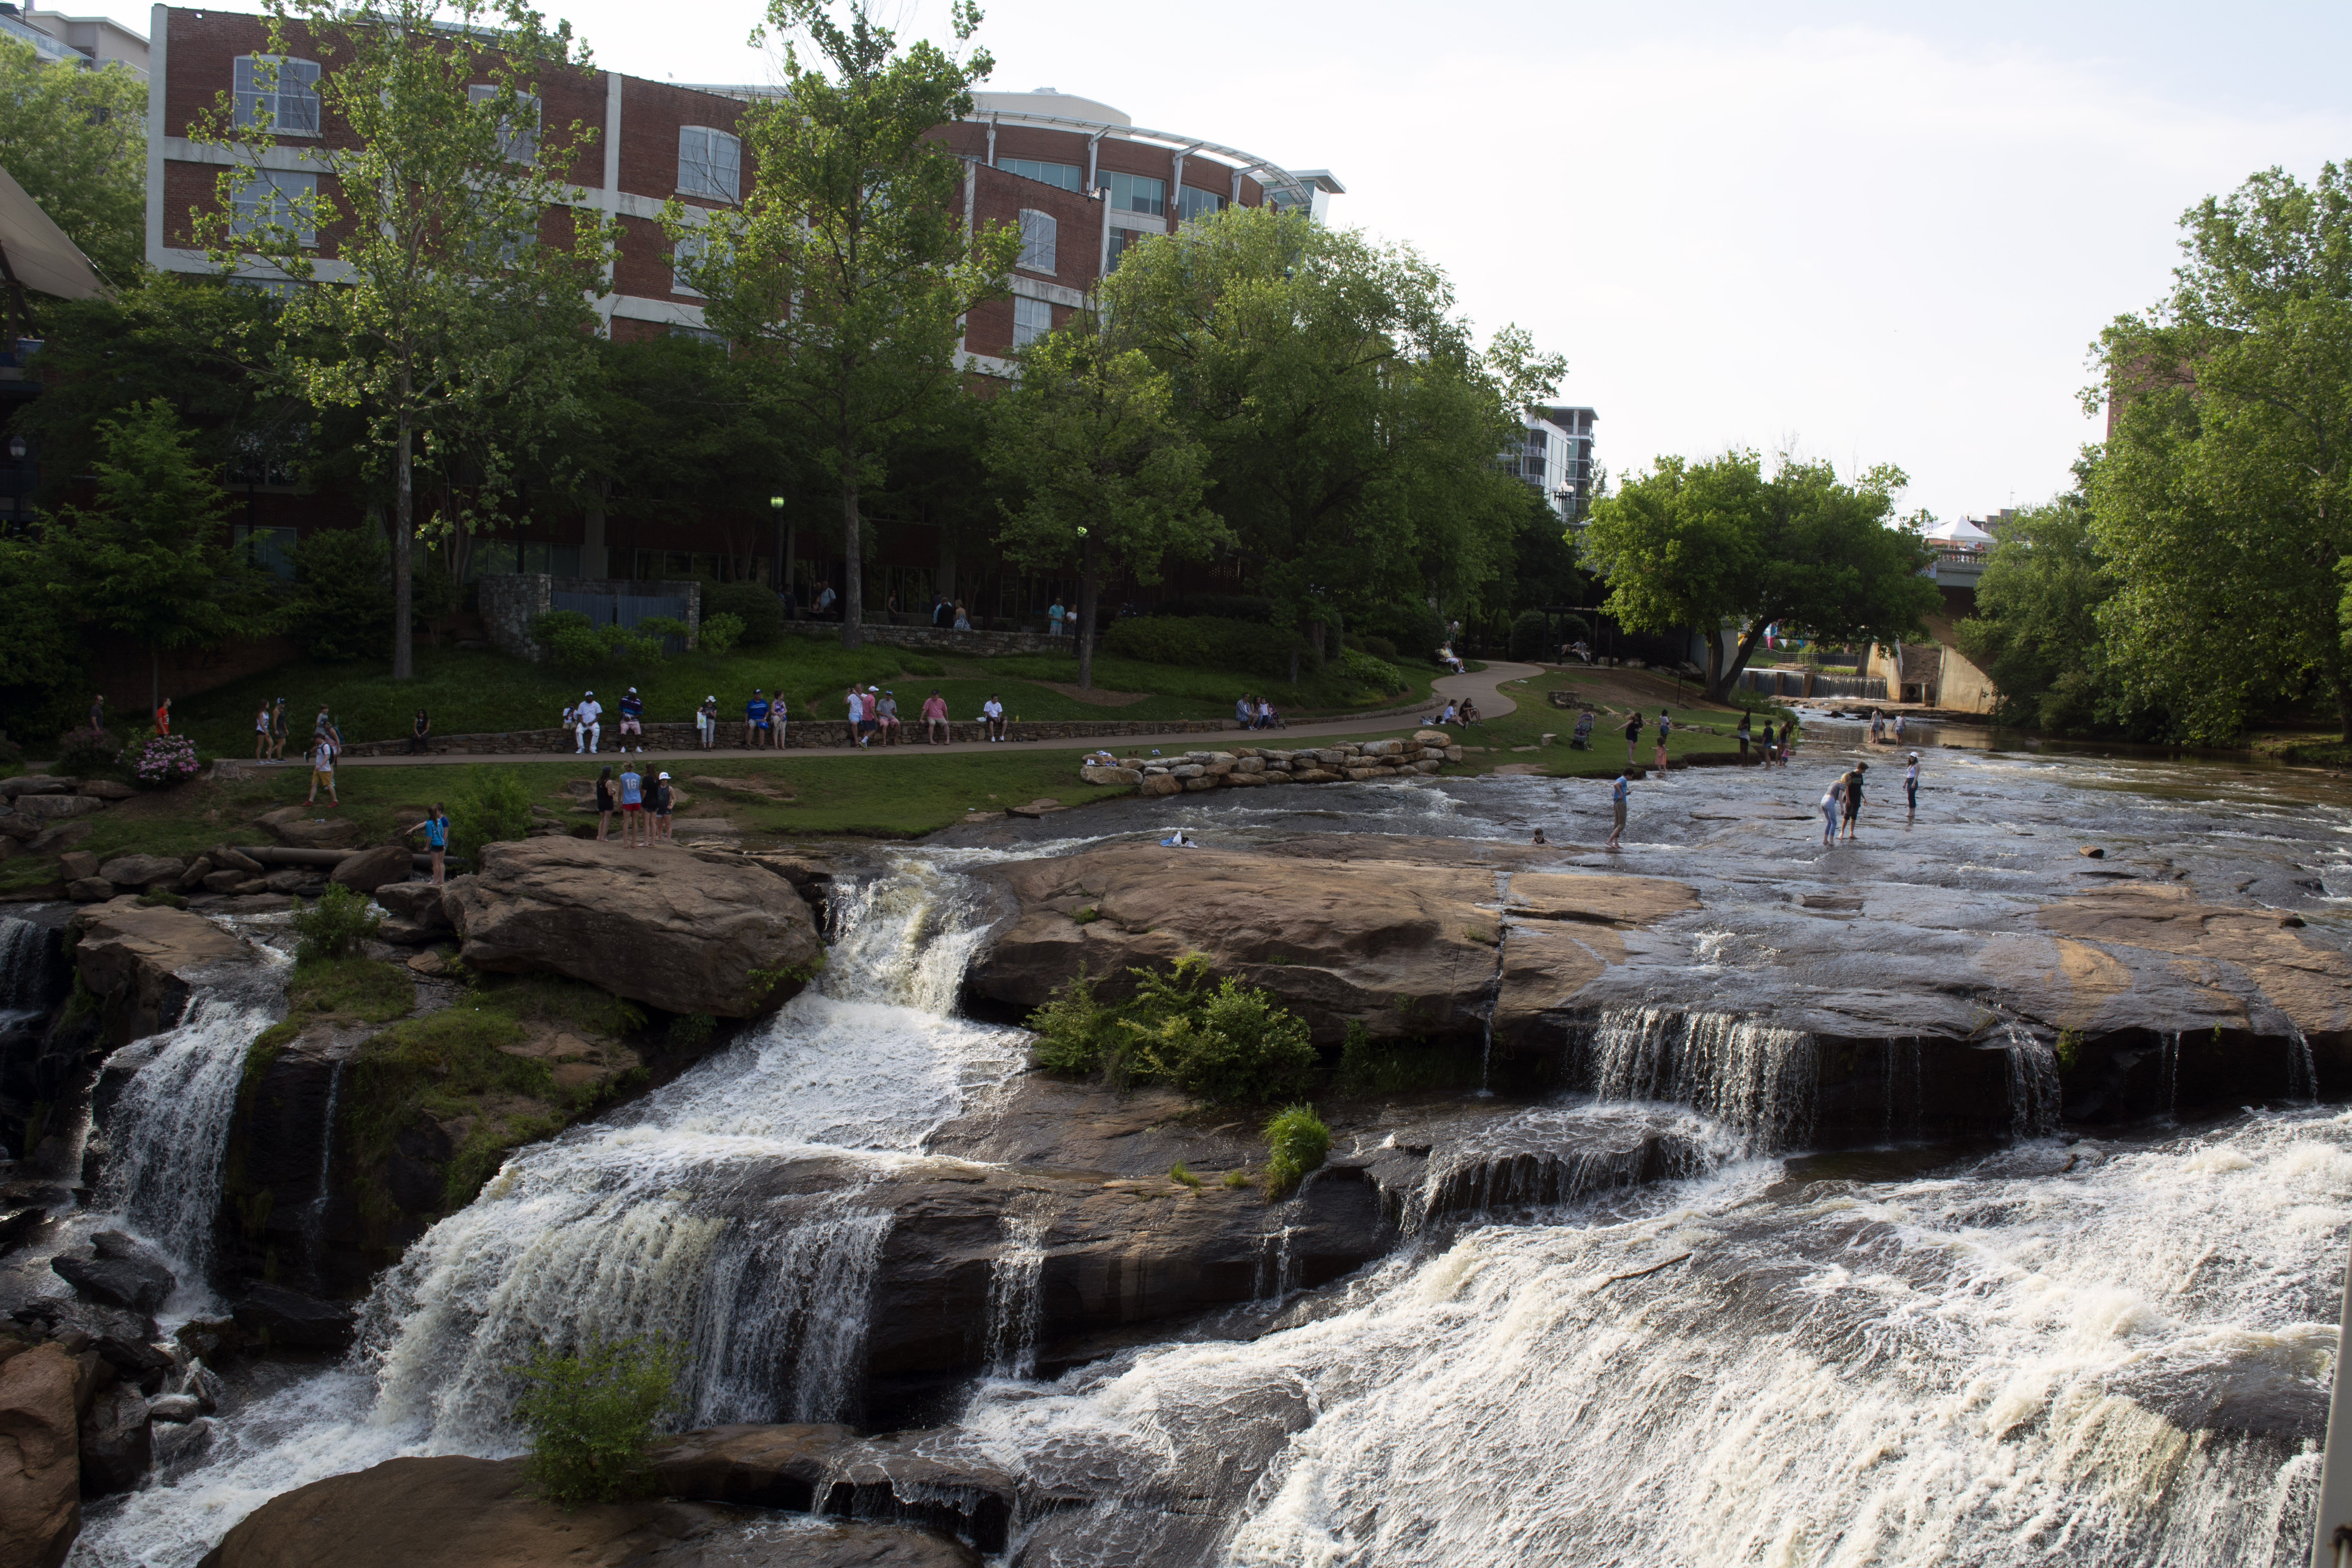 Falls park in downtown Greenville, SC